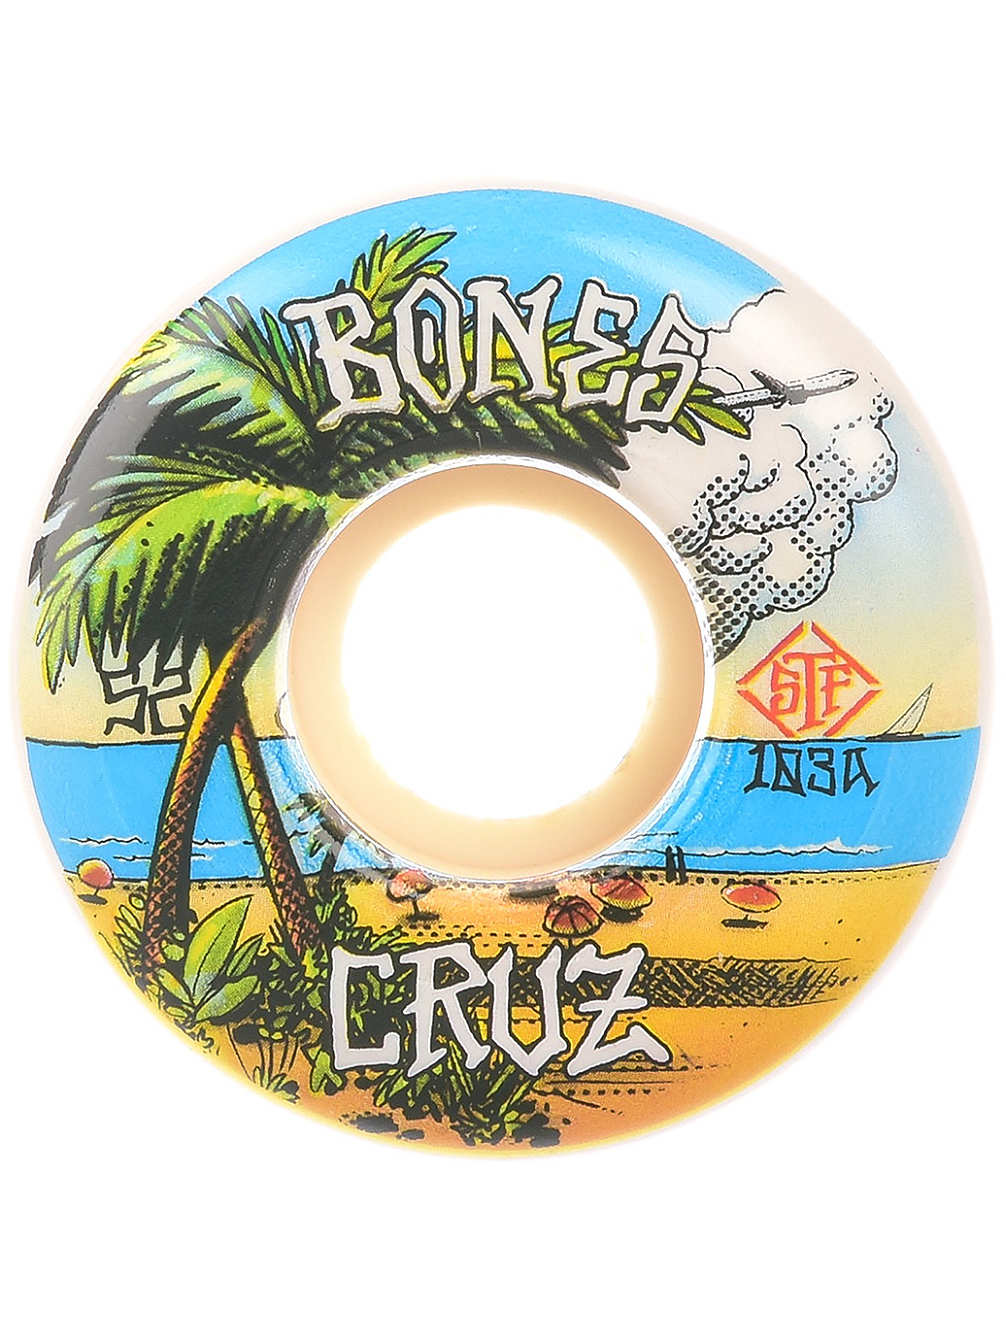 Bones - Wheels STF Cruz Buena Vida 103A V2 Locks